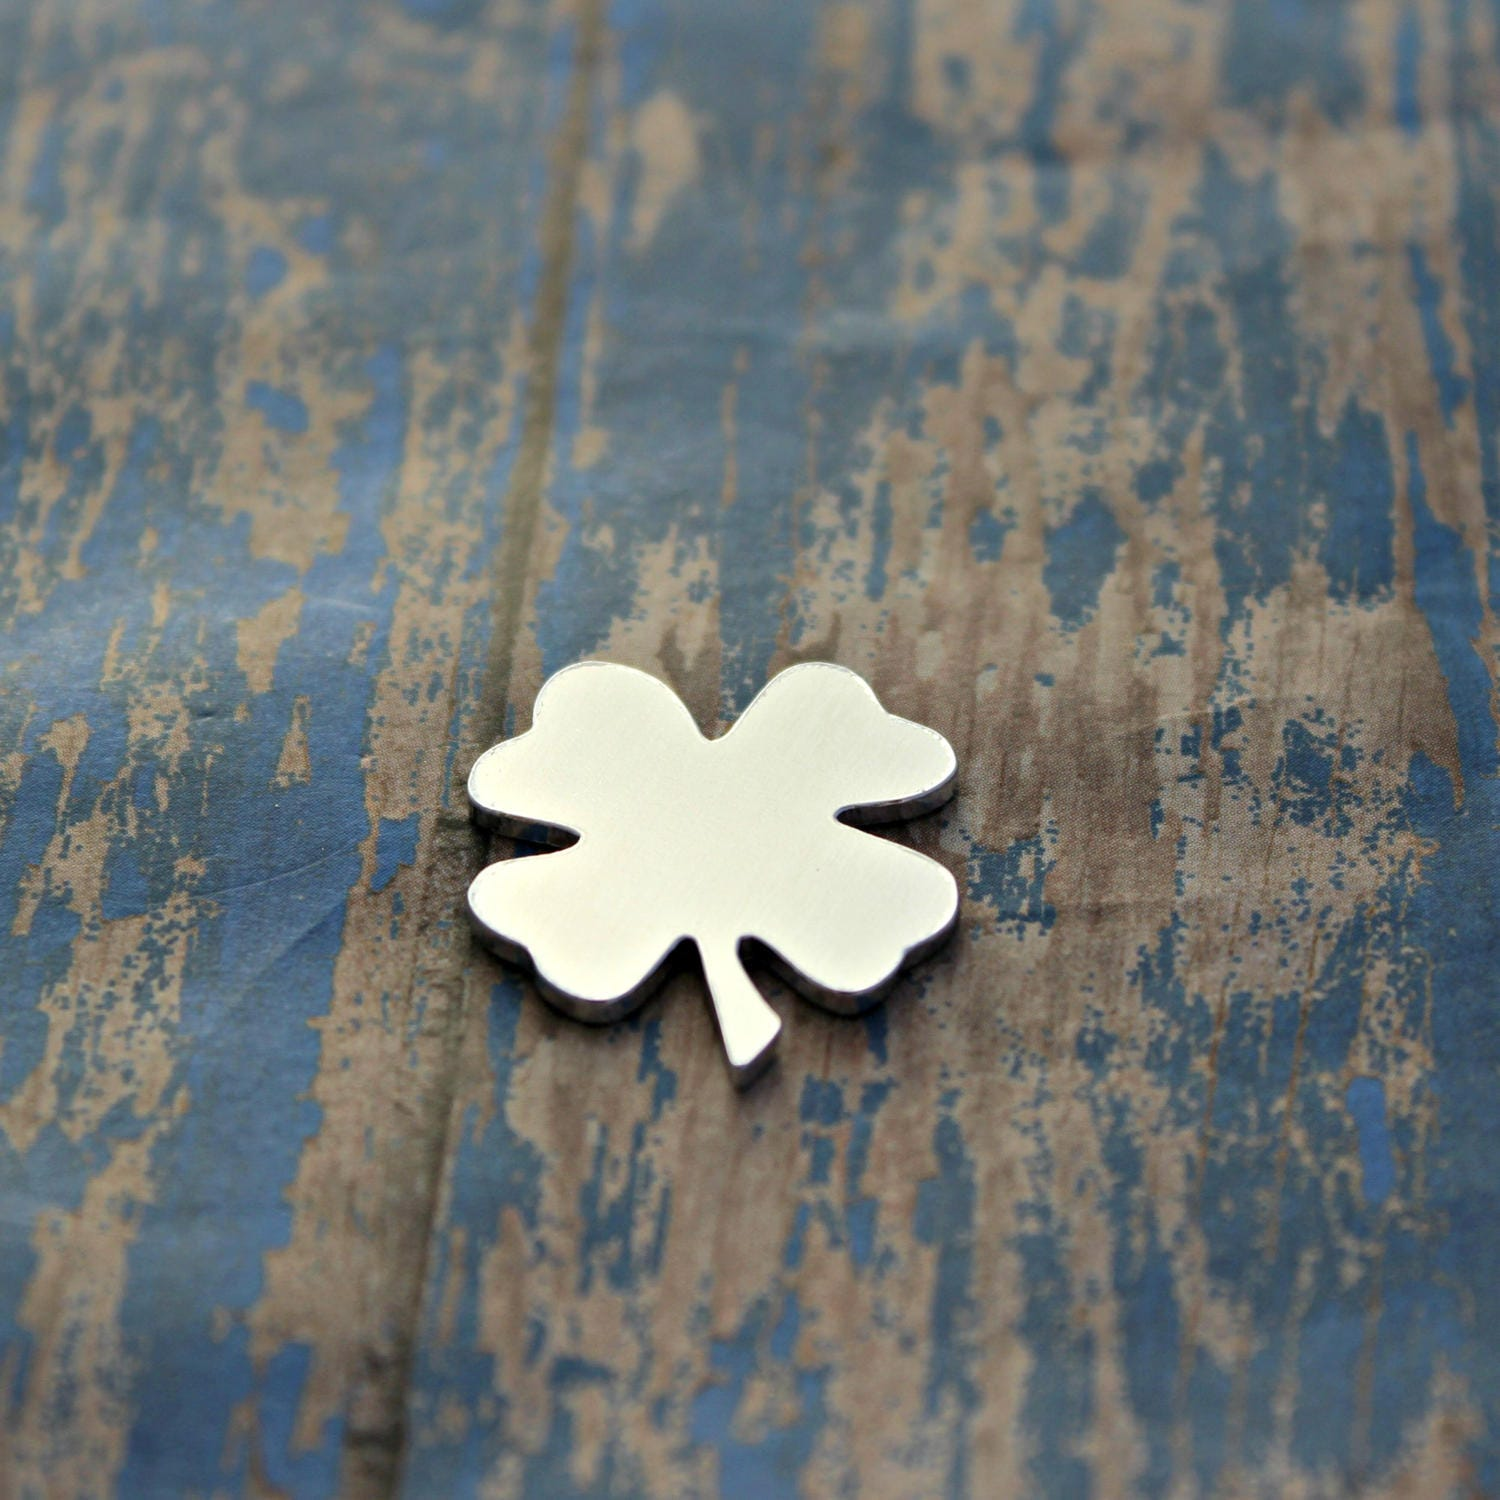 Aluminum 1 Quot 4 Leaf Clover Stamping Blanks Qty 1 From